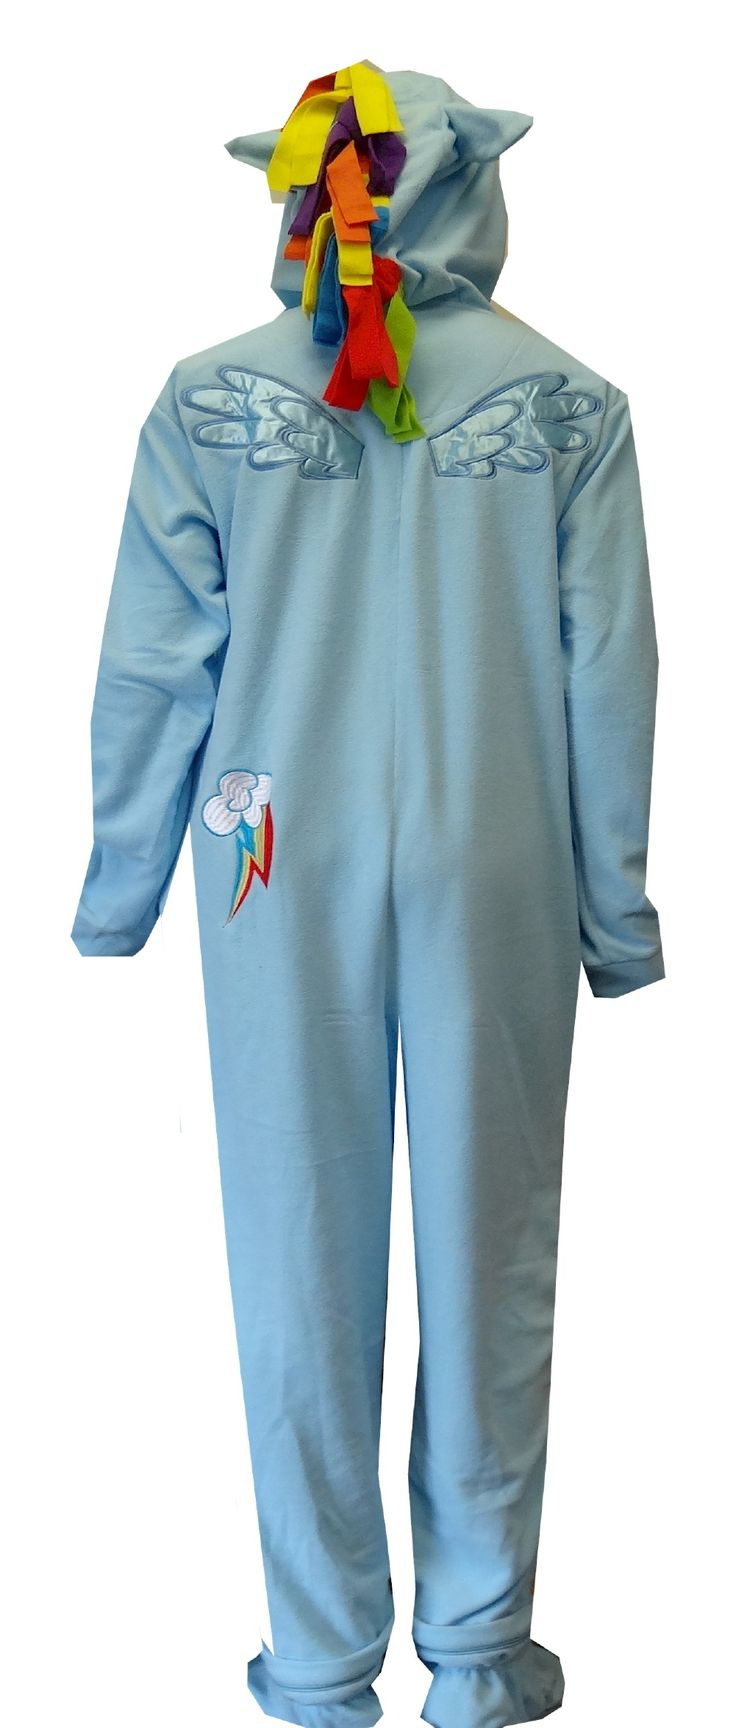 "My Little Pony Rainbow Dash Fleece Onesie Footie Pajama  Who says fun pajamas are for kids? These pajamas for adults are designed to look like My Little Pony's Rainbow Dash. The awesome hood has a face and rainbow colored mane. The rear has satin embroidered wings and insignia. This soft fleece pj has a half-zip front, side pockets and slits in the cuffs for your thumbs. Feet completely zip on and off! Medium fits 5'3""-5'7"" 125-150 lbs. Large fits 5'7""-5'11"" 150-175 lbs. XL fits 5'11, $35"